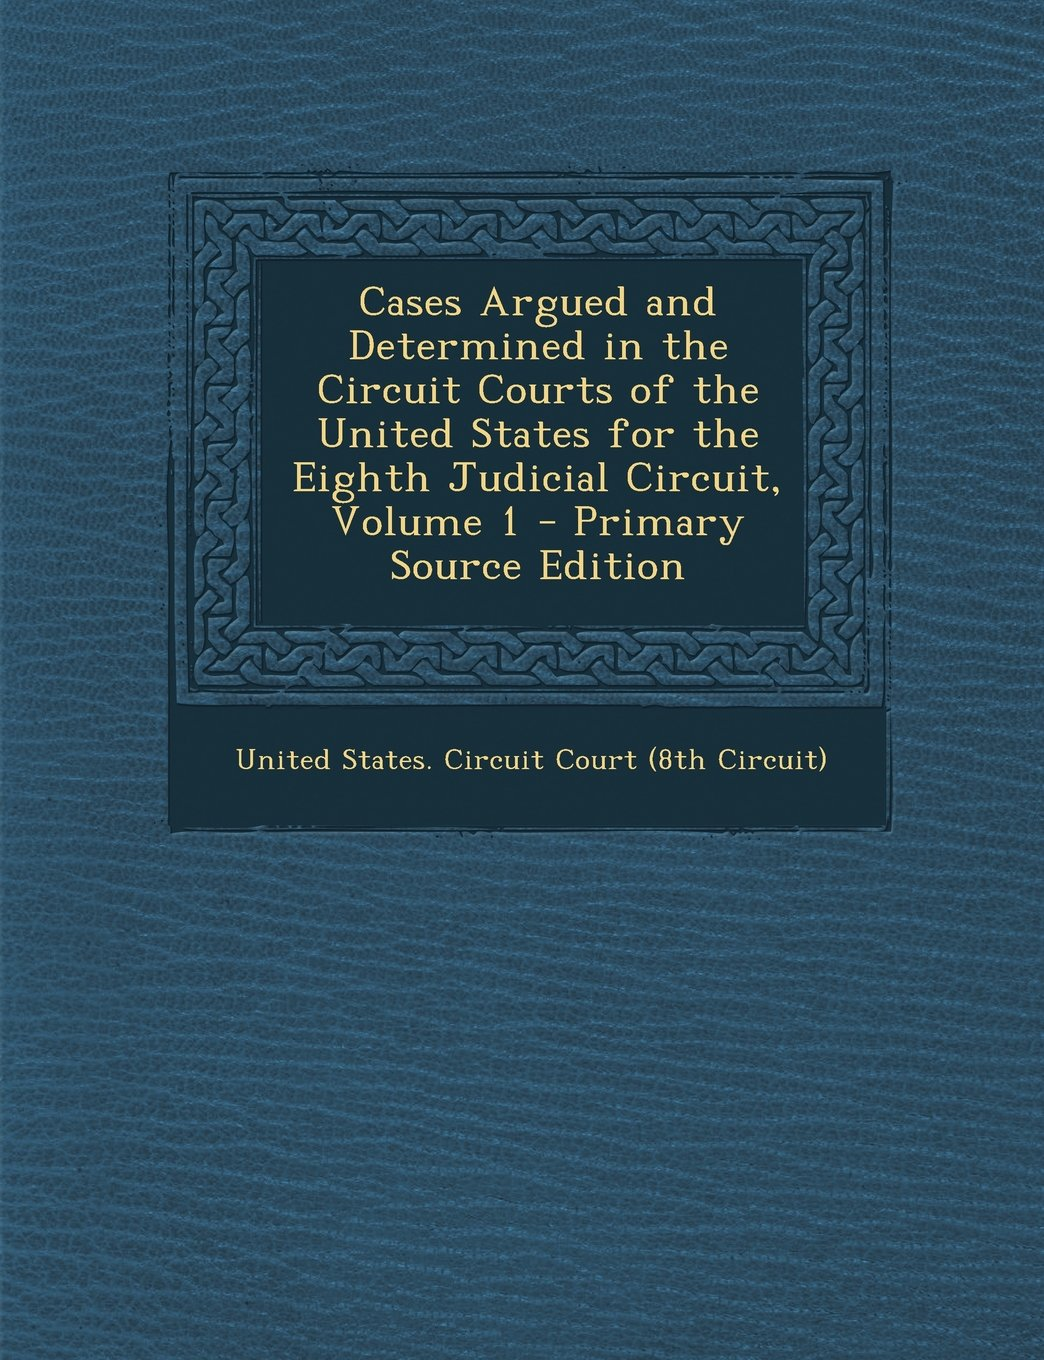 Download Cases Argued and Determined in the Circuit Courts of the United States for the Eighth Judicial Circuit, Volume 1 - Primary Source Edition PDF